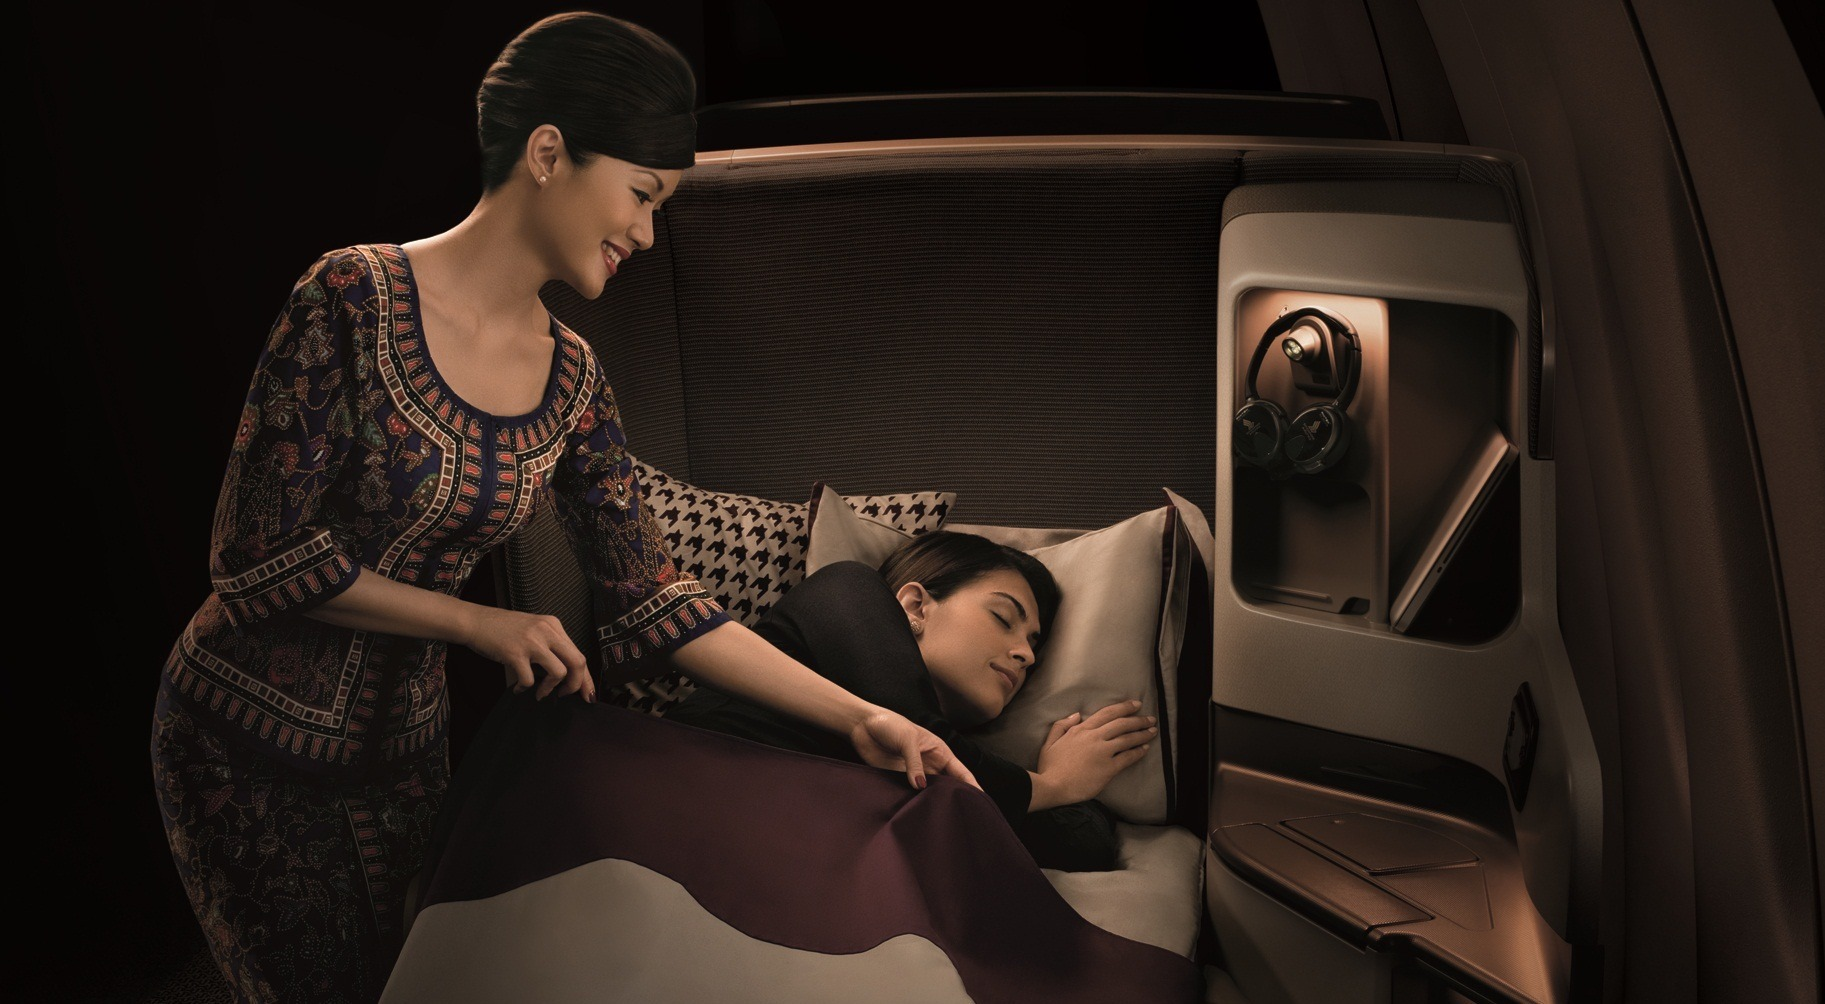 Singapore Airlines Business Class stewardessa